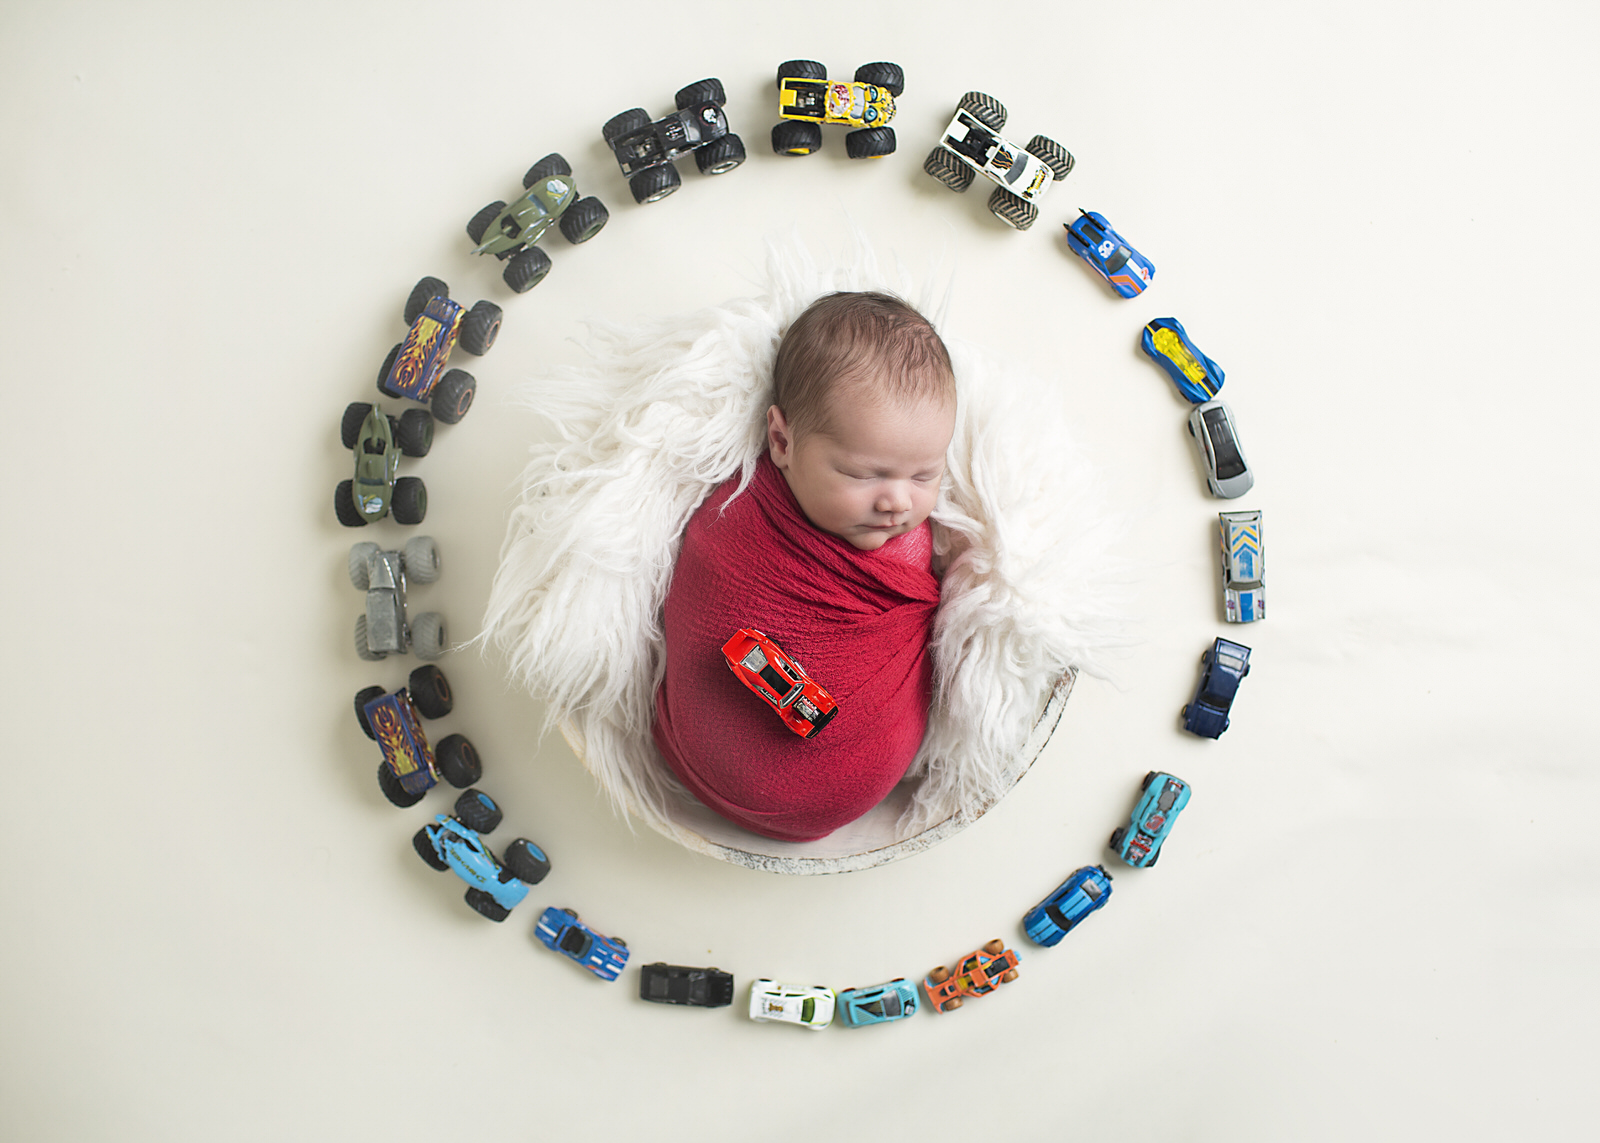 Toy Cars Newborn Photos